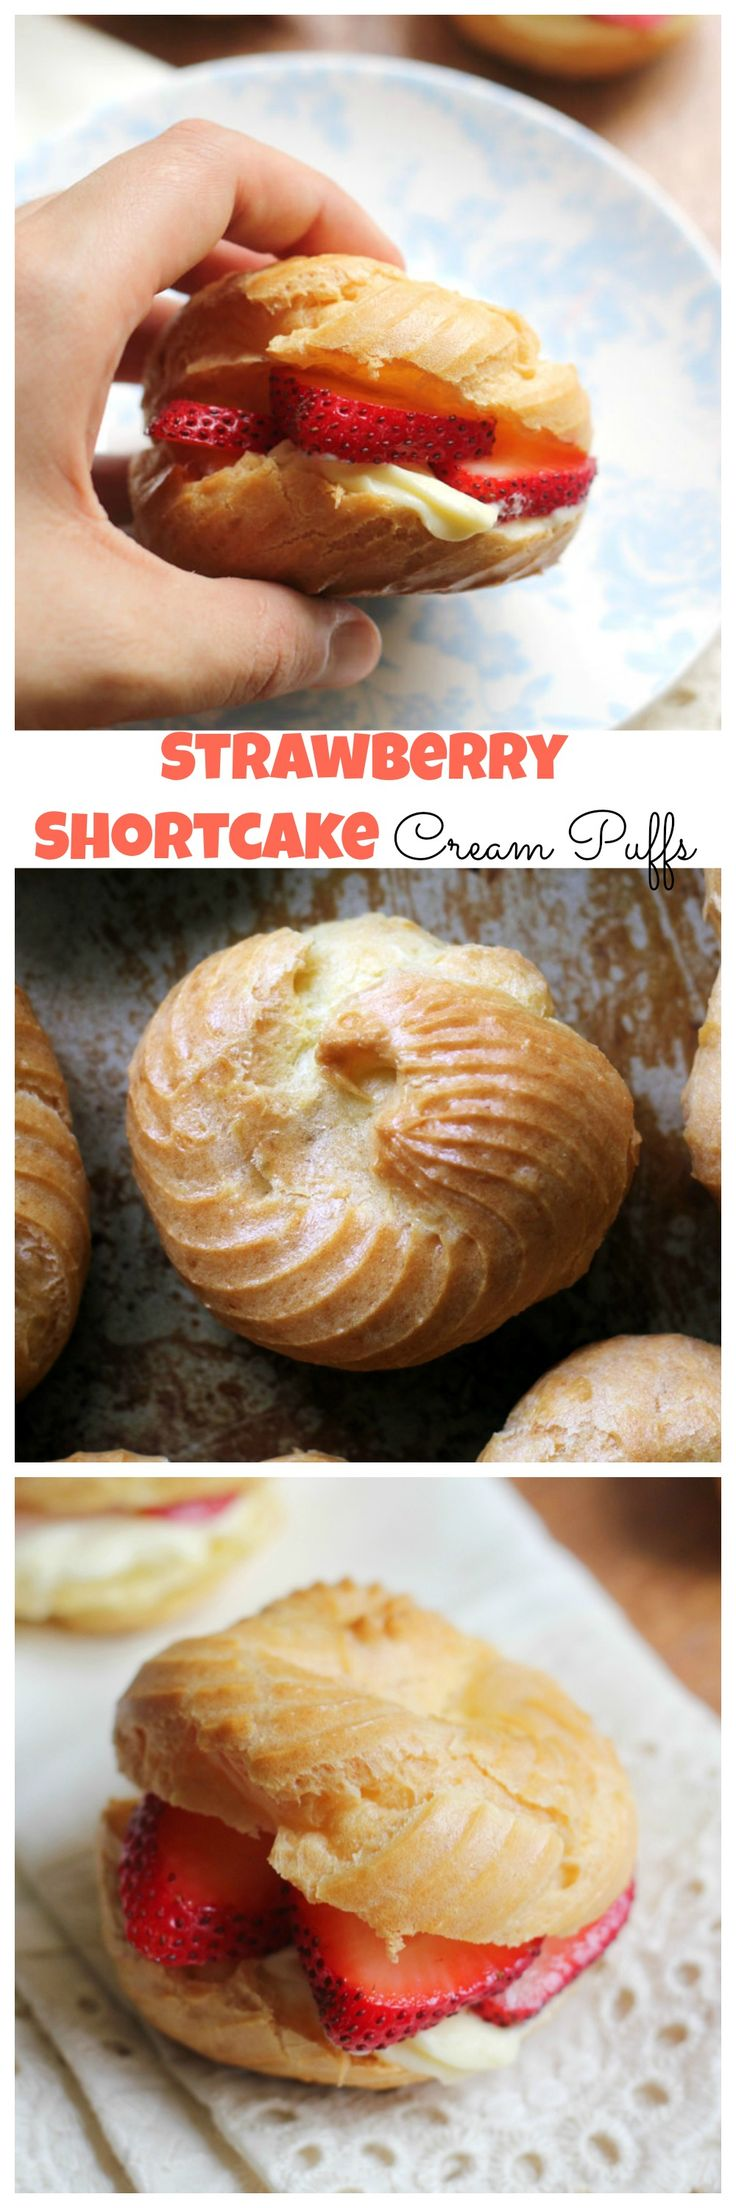 Strawberry shortcake cream puffs filled with a rich French pastry cream and juicy strawberry slices.